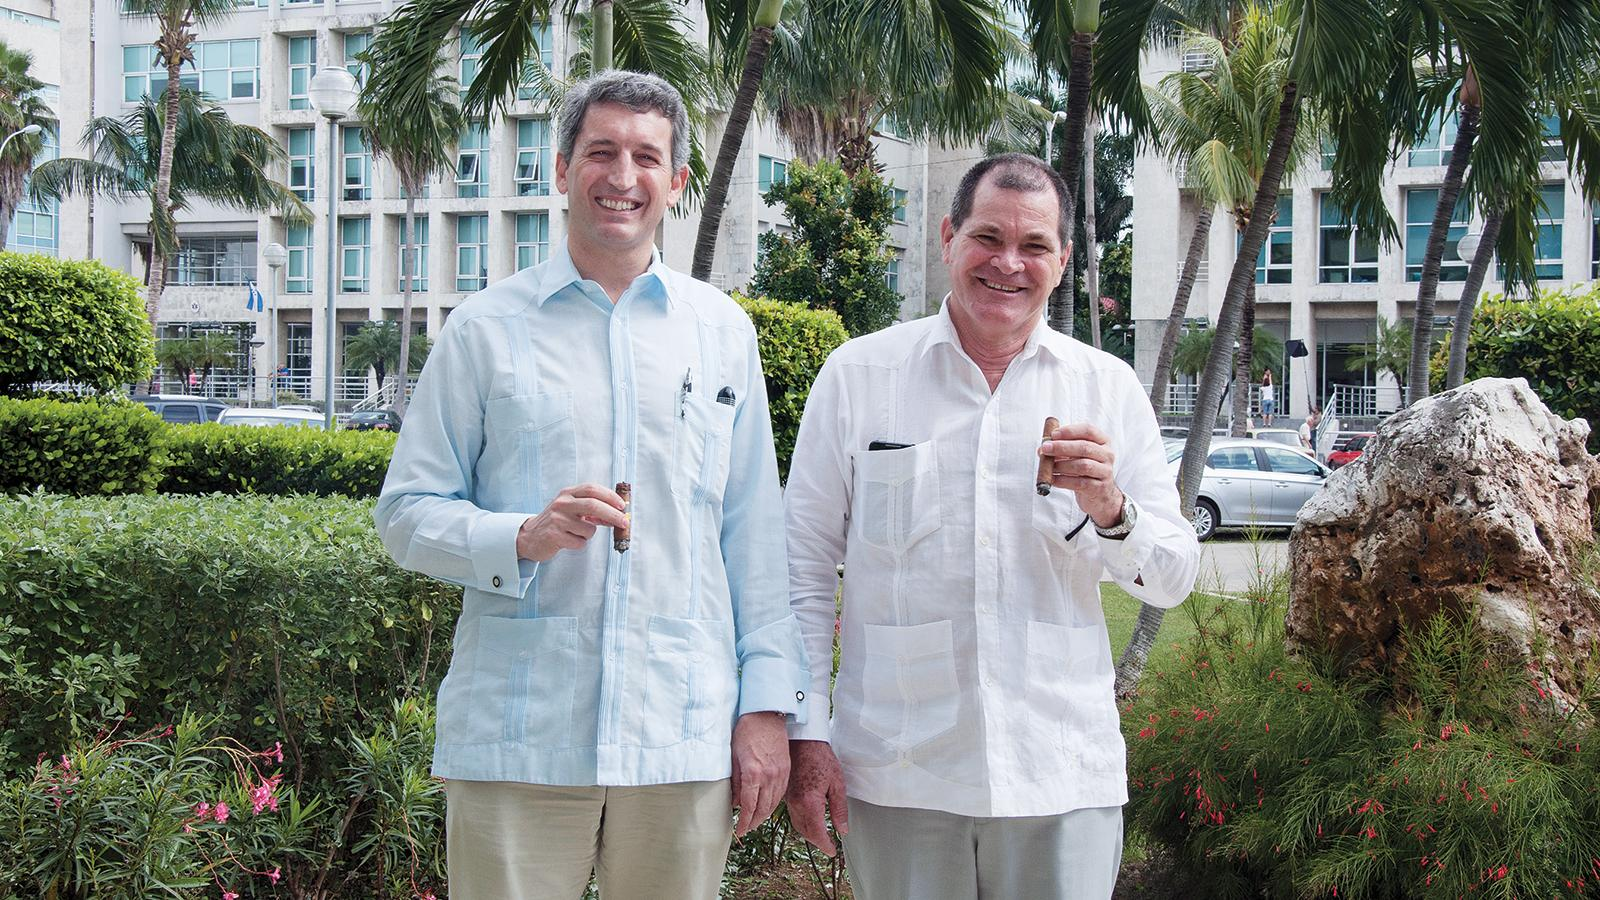 The copresidents of Habanos S.A.: Luis Sánchez Harguindey (left) and Inocente Núñez Blanco are developing a gameplan for the day when Cuban cigars can be sold in the United States.